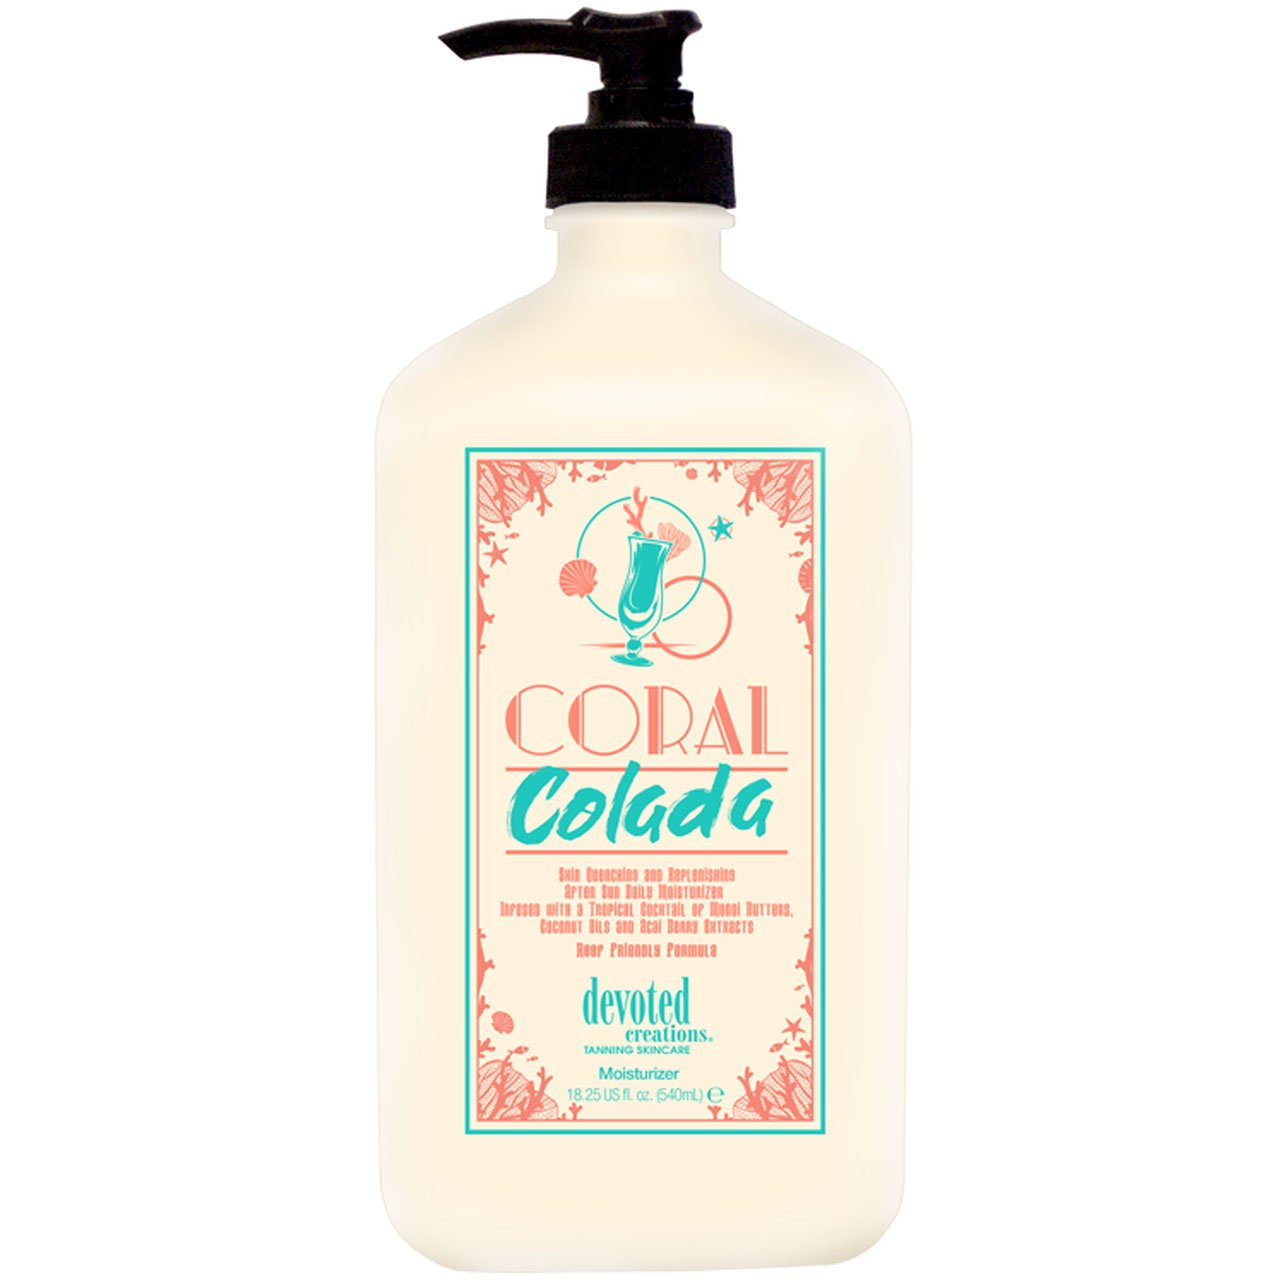 Devoted Creations Coral Colada Daily Moisturizer - LuxuryBeautySource.com